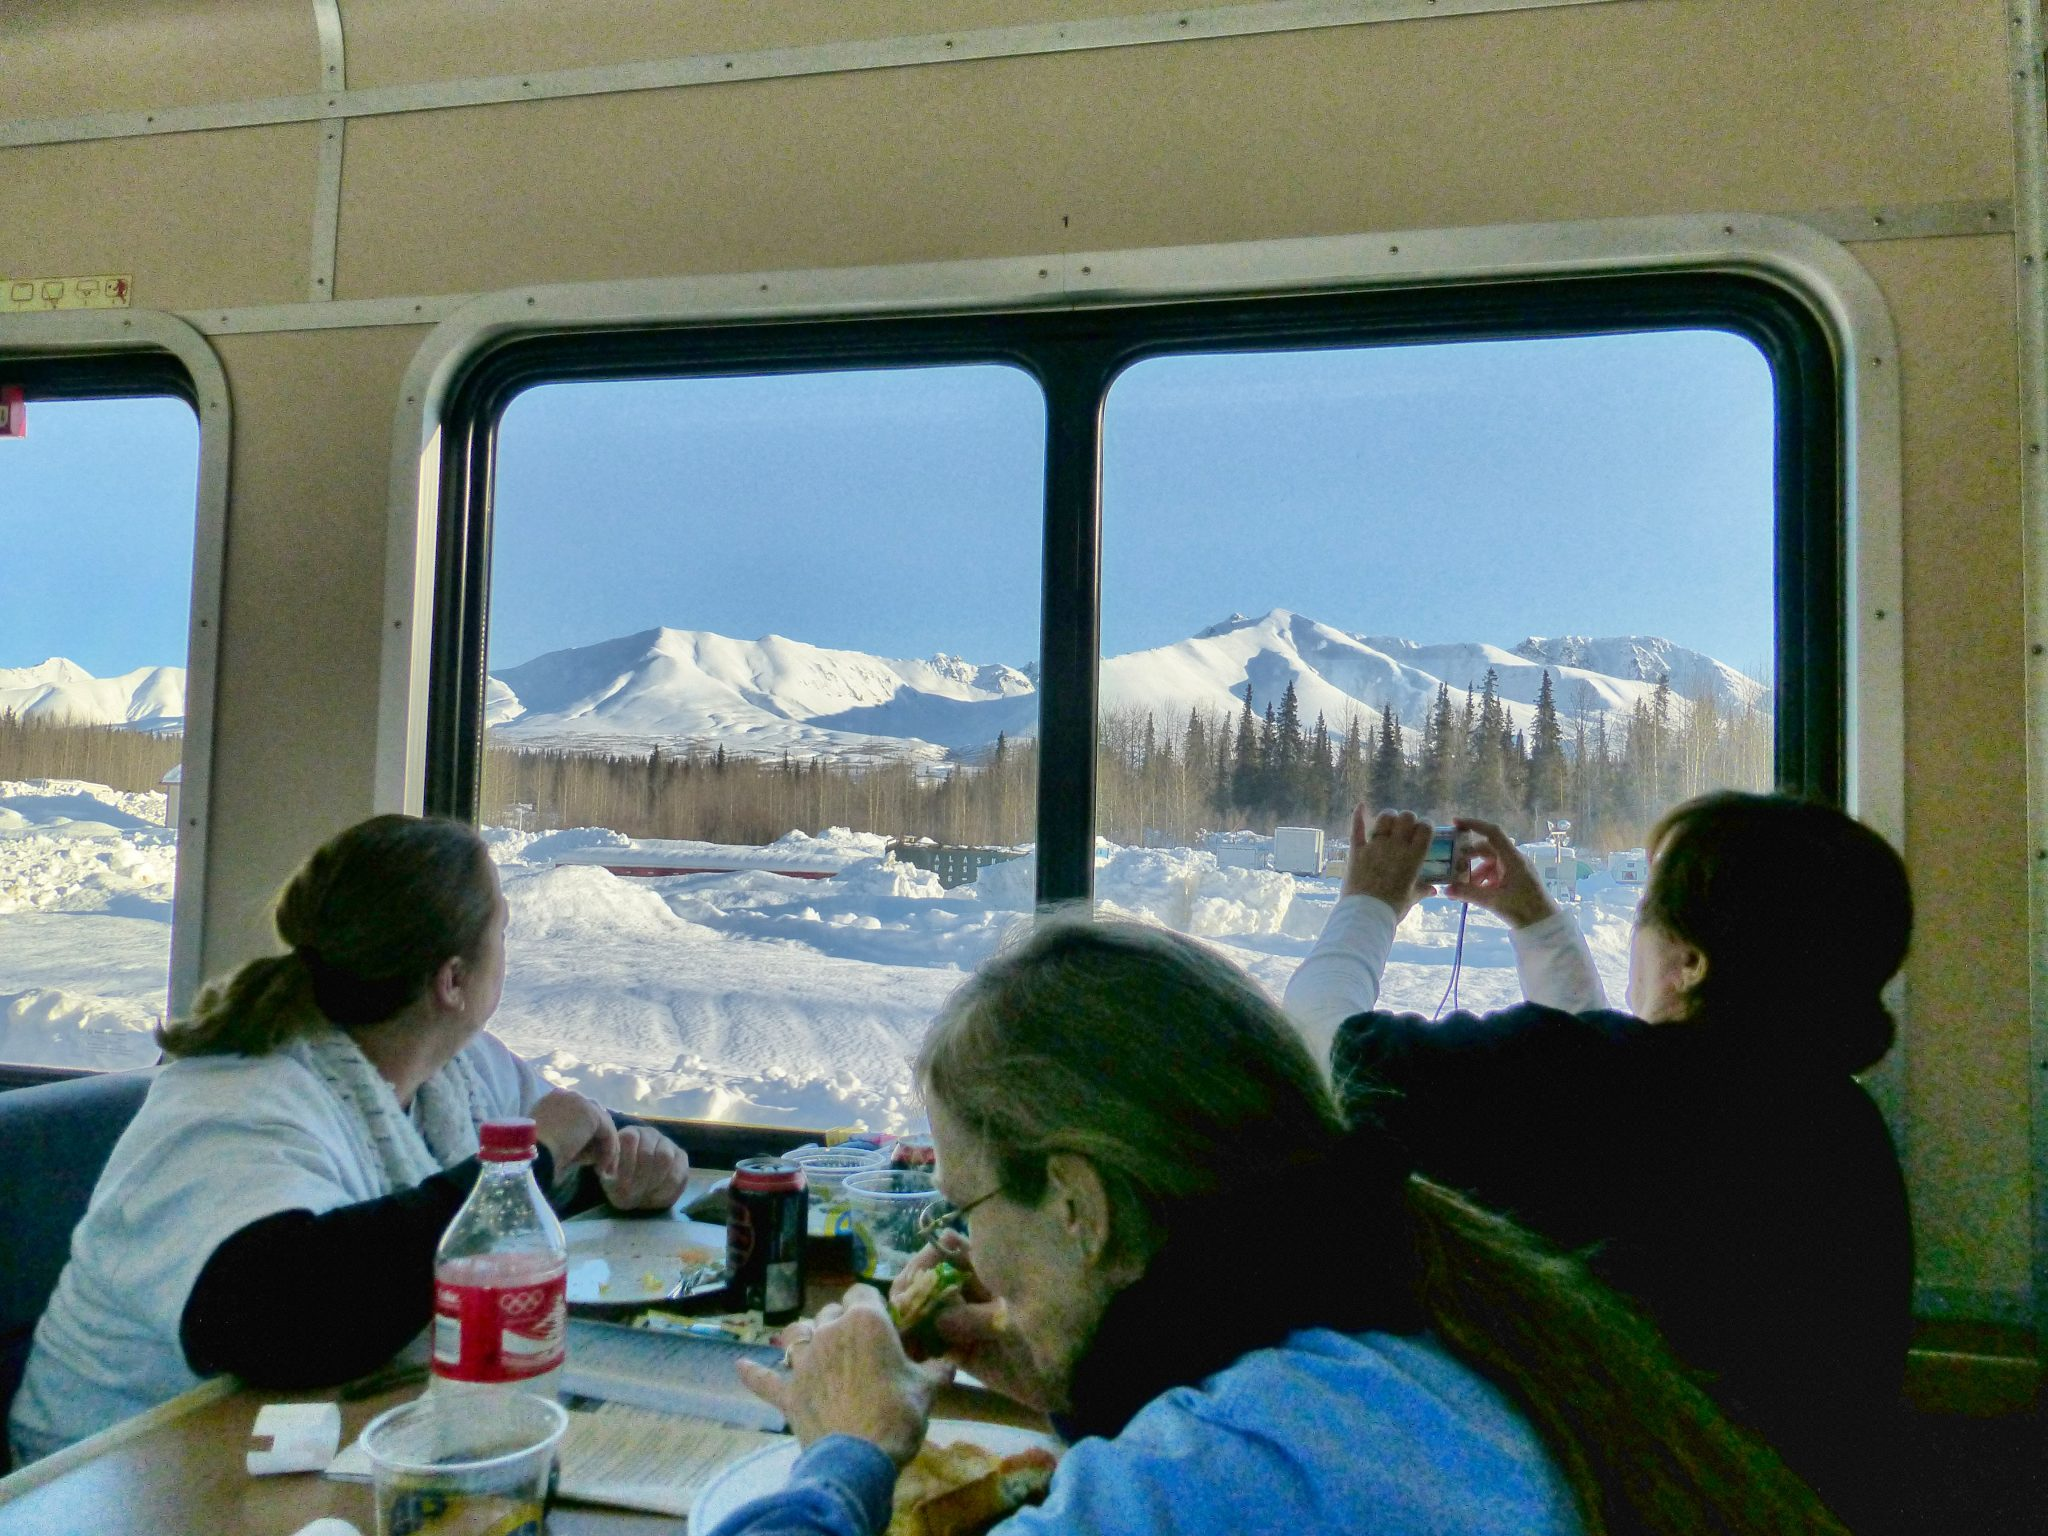 ALL A B O A R D The Mighty Alaska Railroads Aurora Train